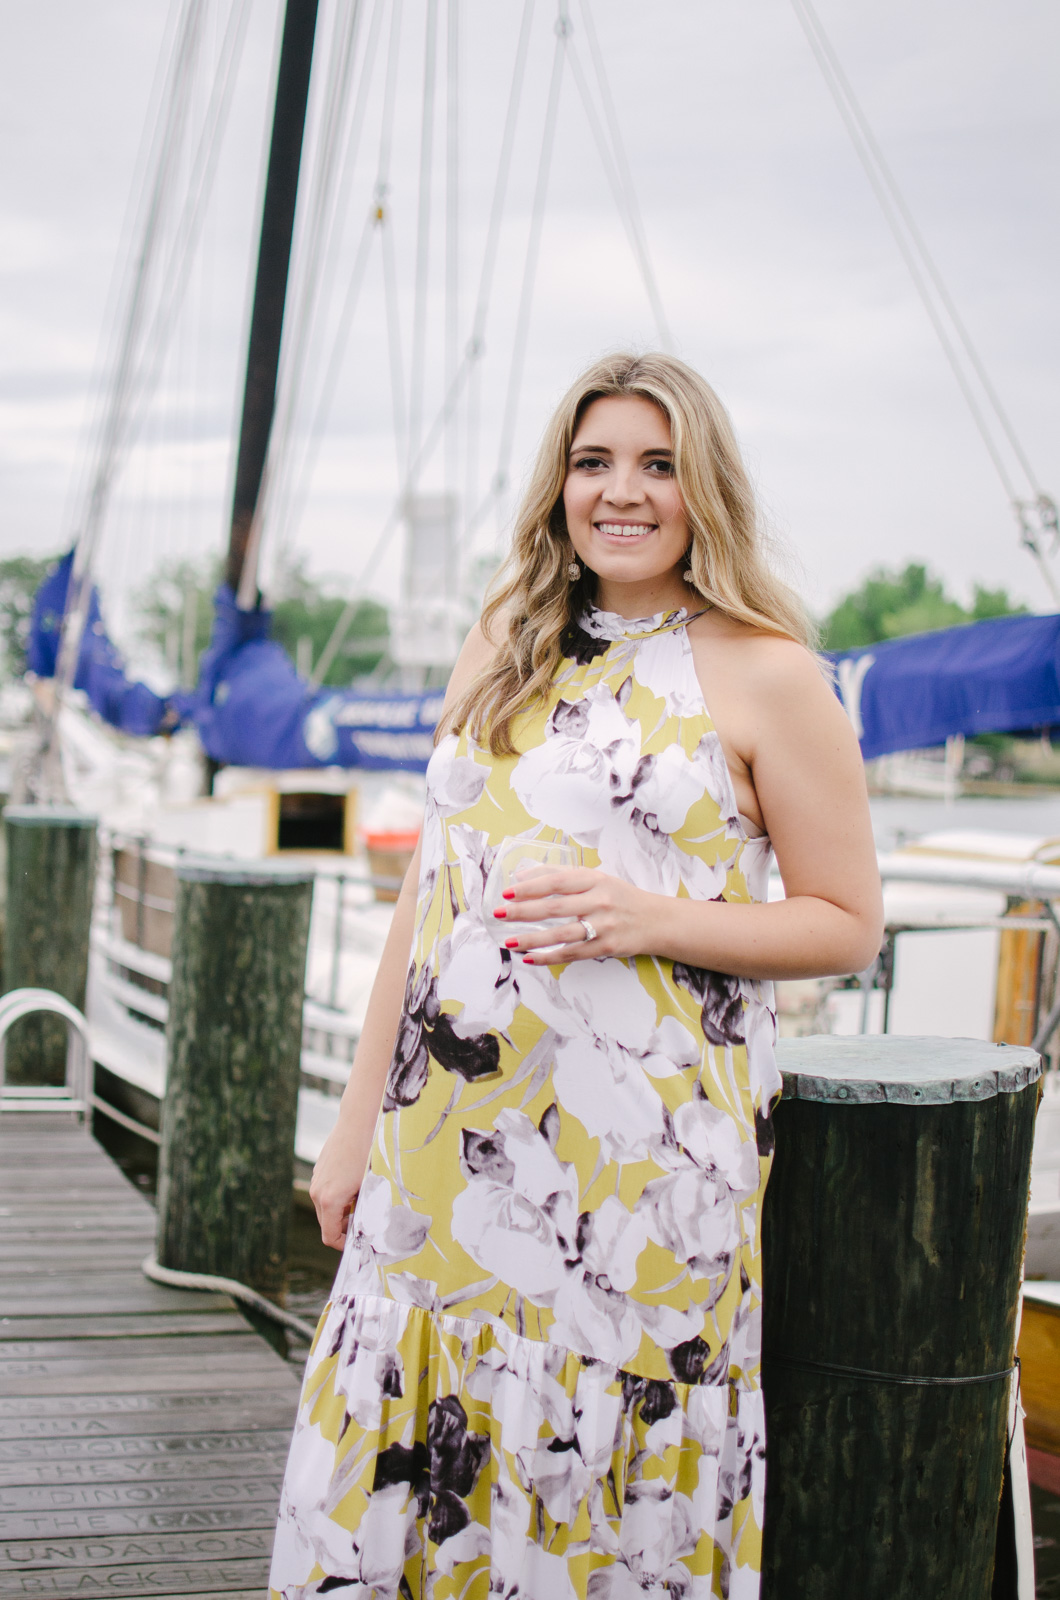 maternity style: floral maxi dress - non-maternity maxi dress for summer | bylaurenm.com